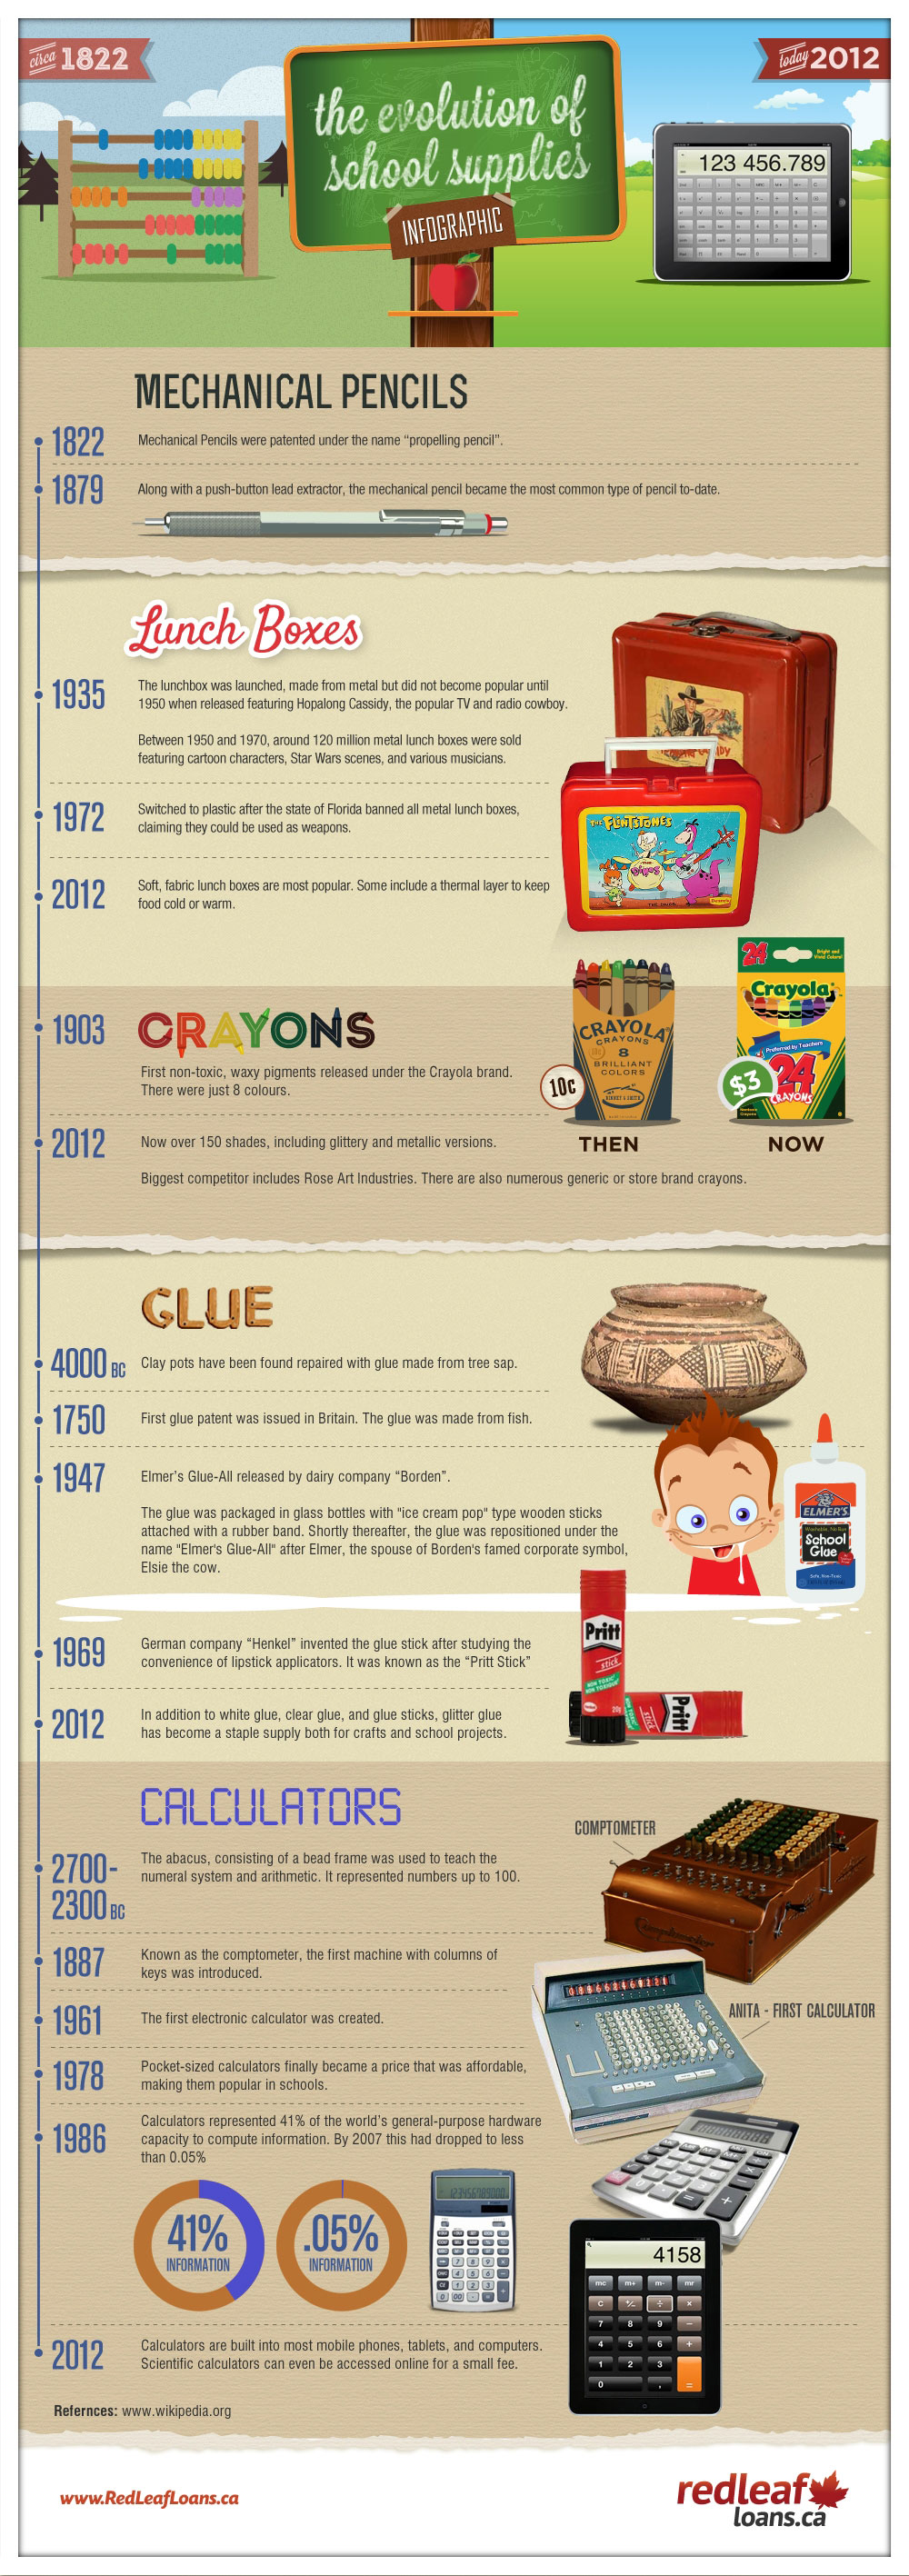 the-evolution-of-school-supplies_504663354aa89